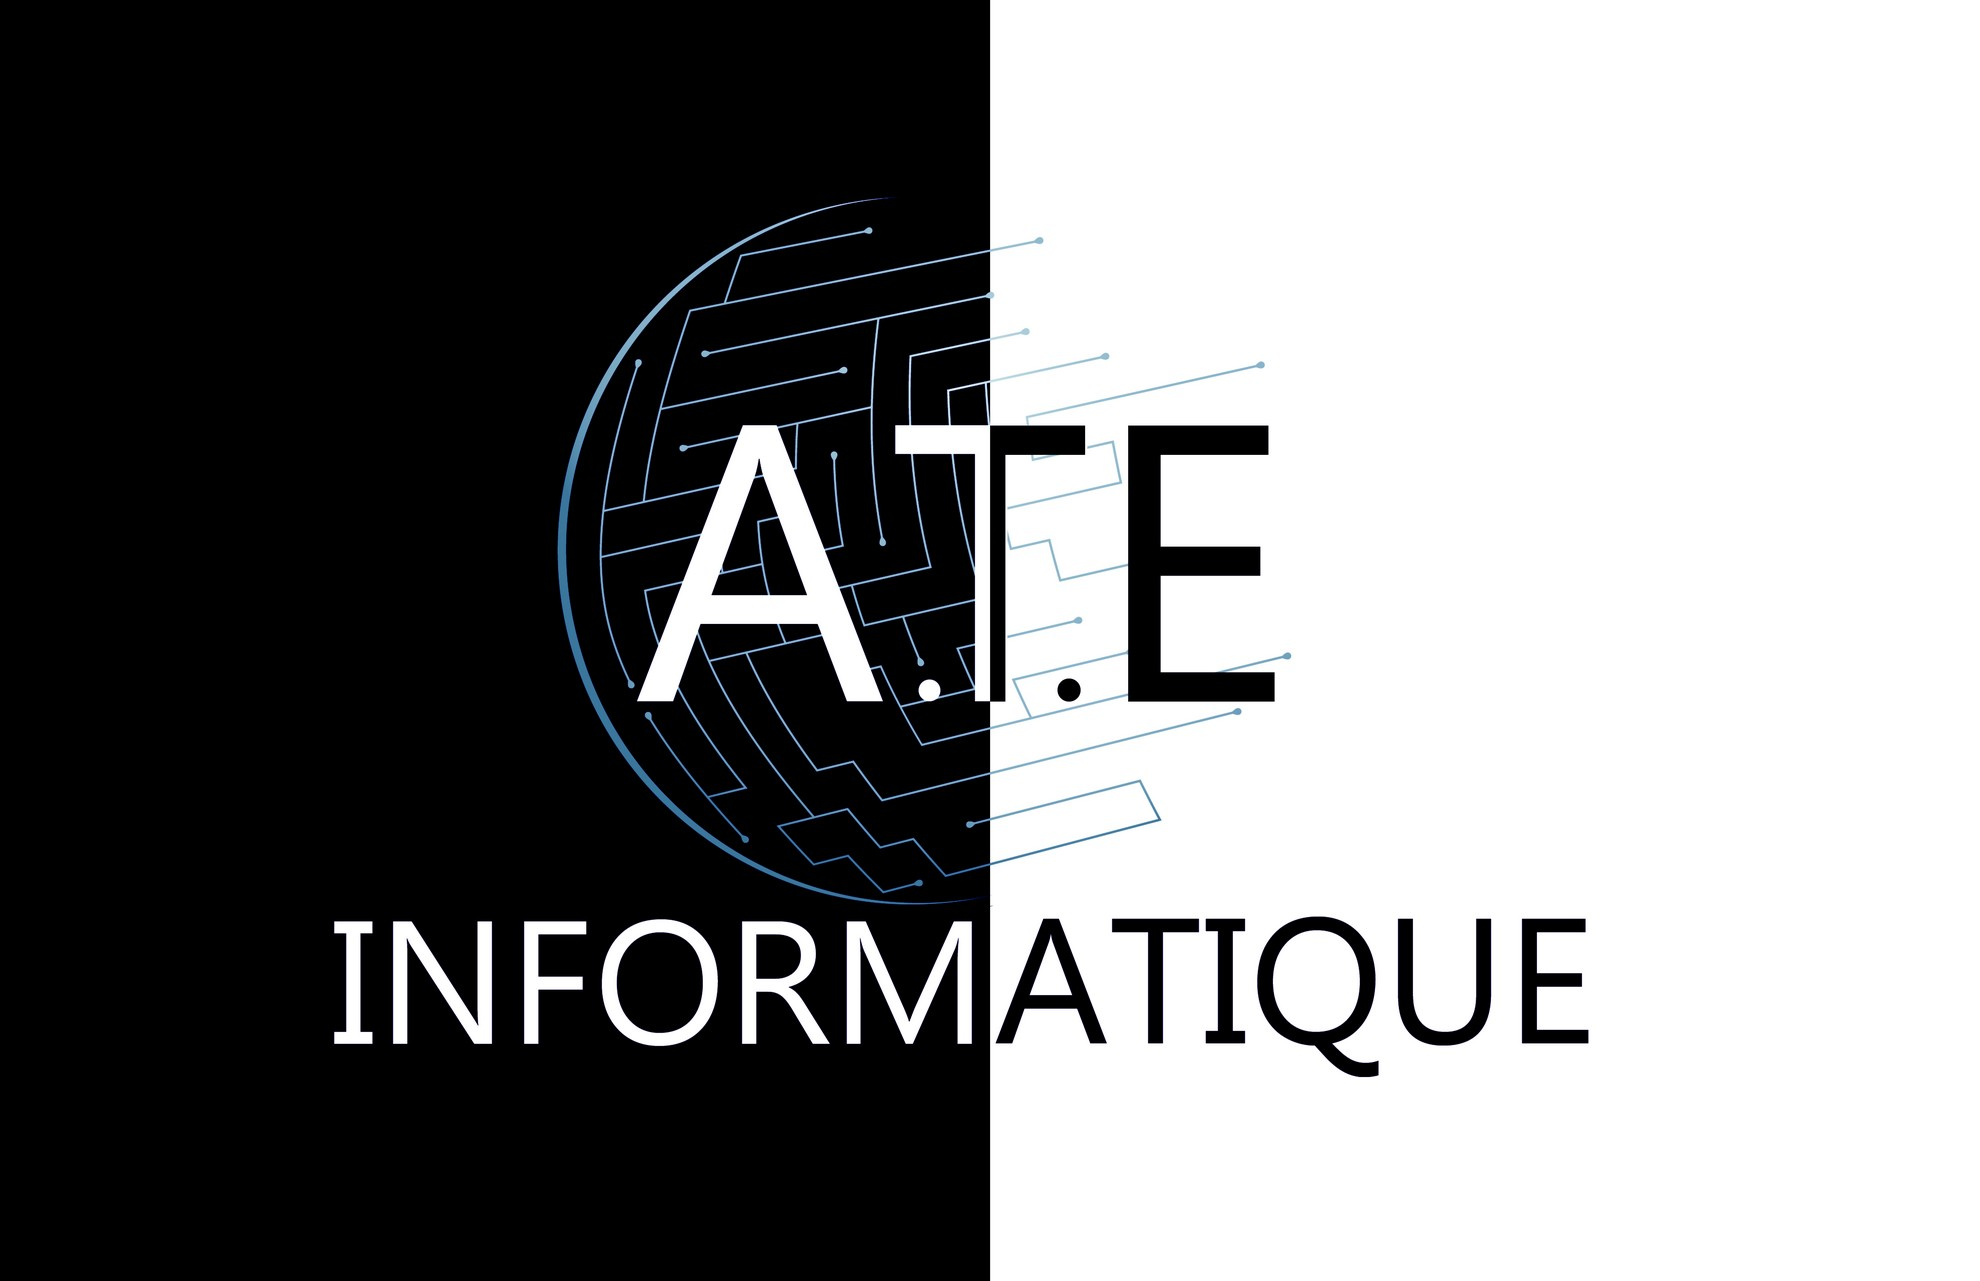 ATE INFORMATIQUE FRANCE